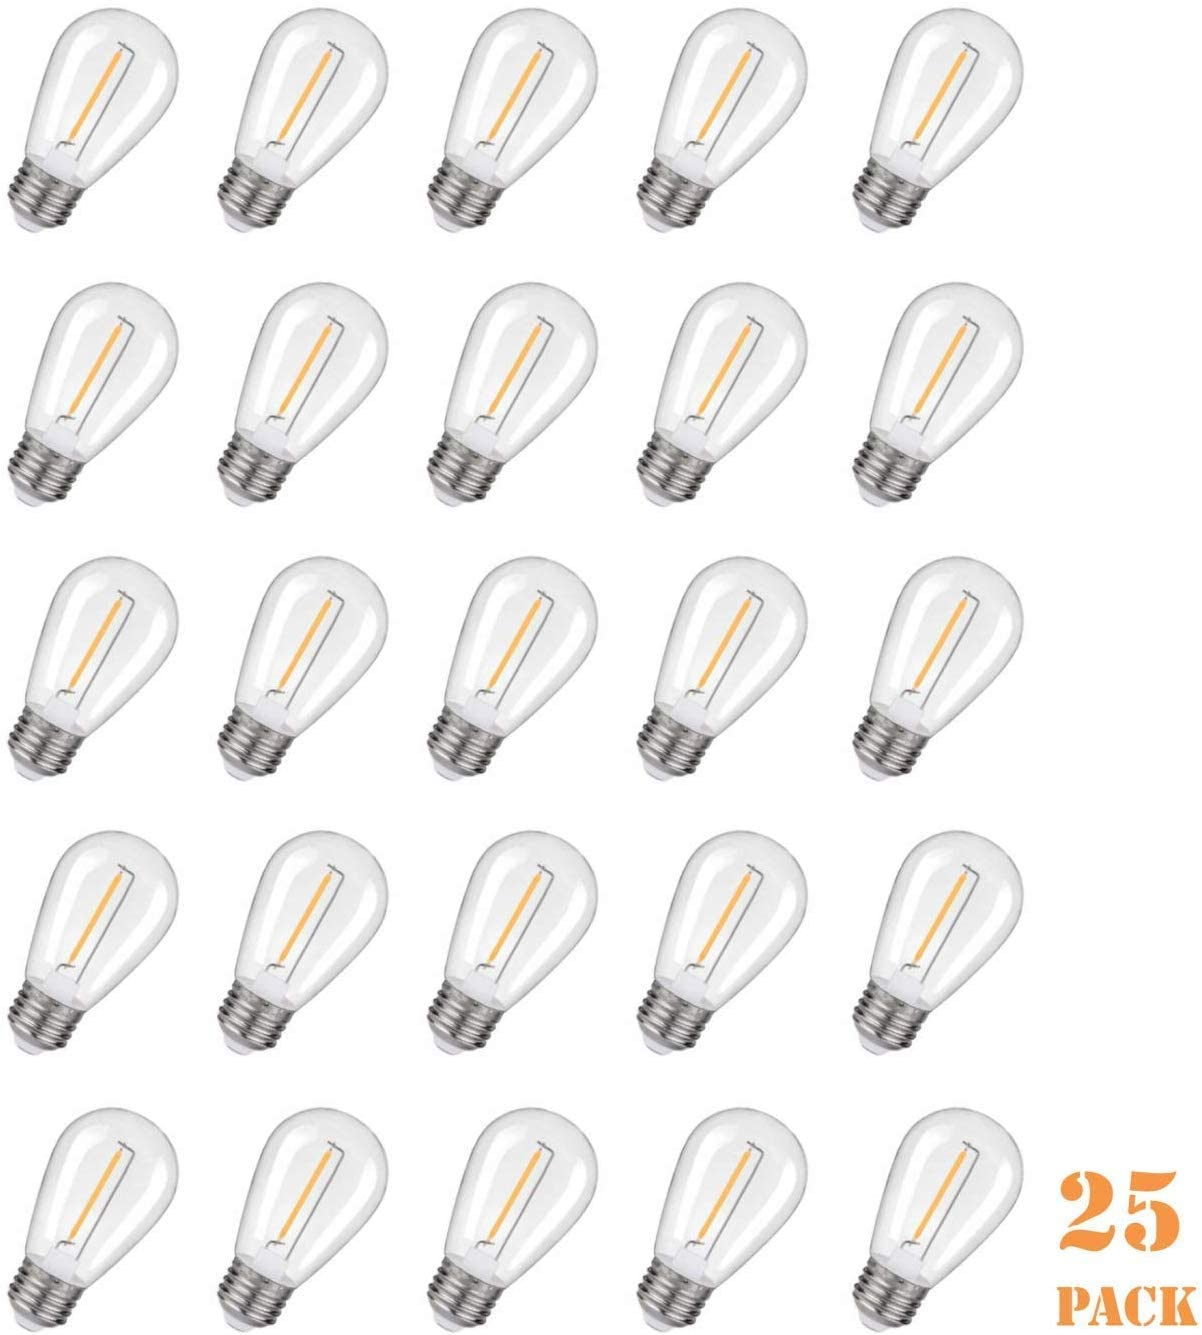 Emitting Shatterproof & Waterproof S14 Replacement LED Light Bulbs – 1W Equivalent to 10W, Non-Dimmable 2200K Plastic Bulbs, E26 Base Edison Bulbs (25 Pack)